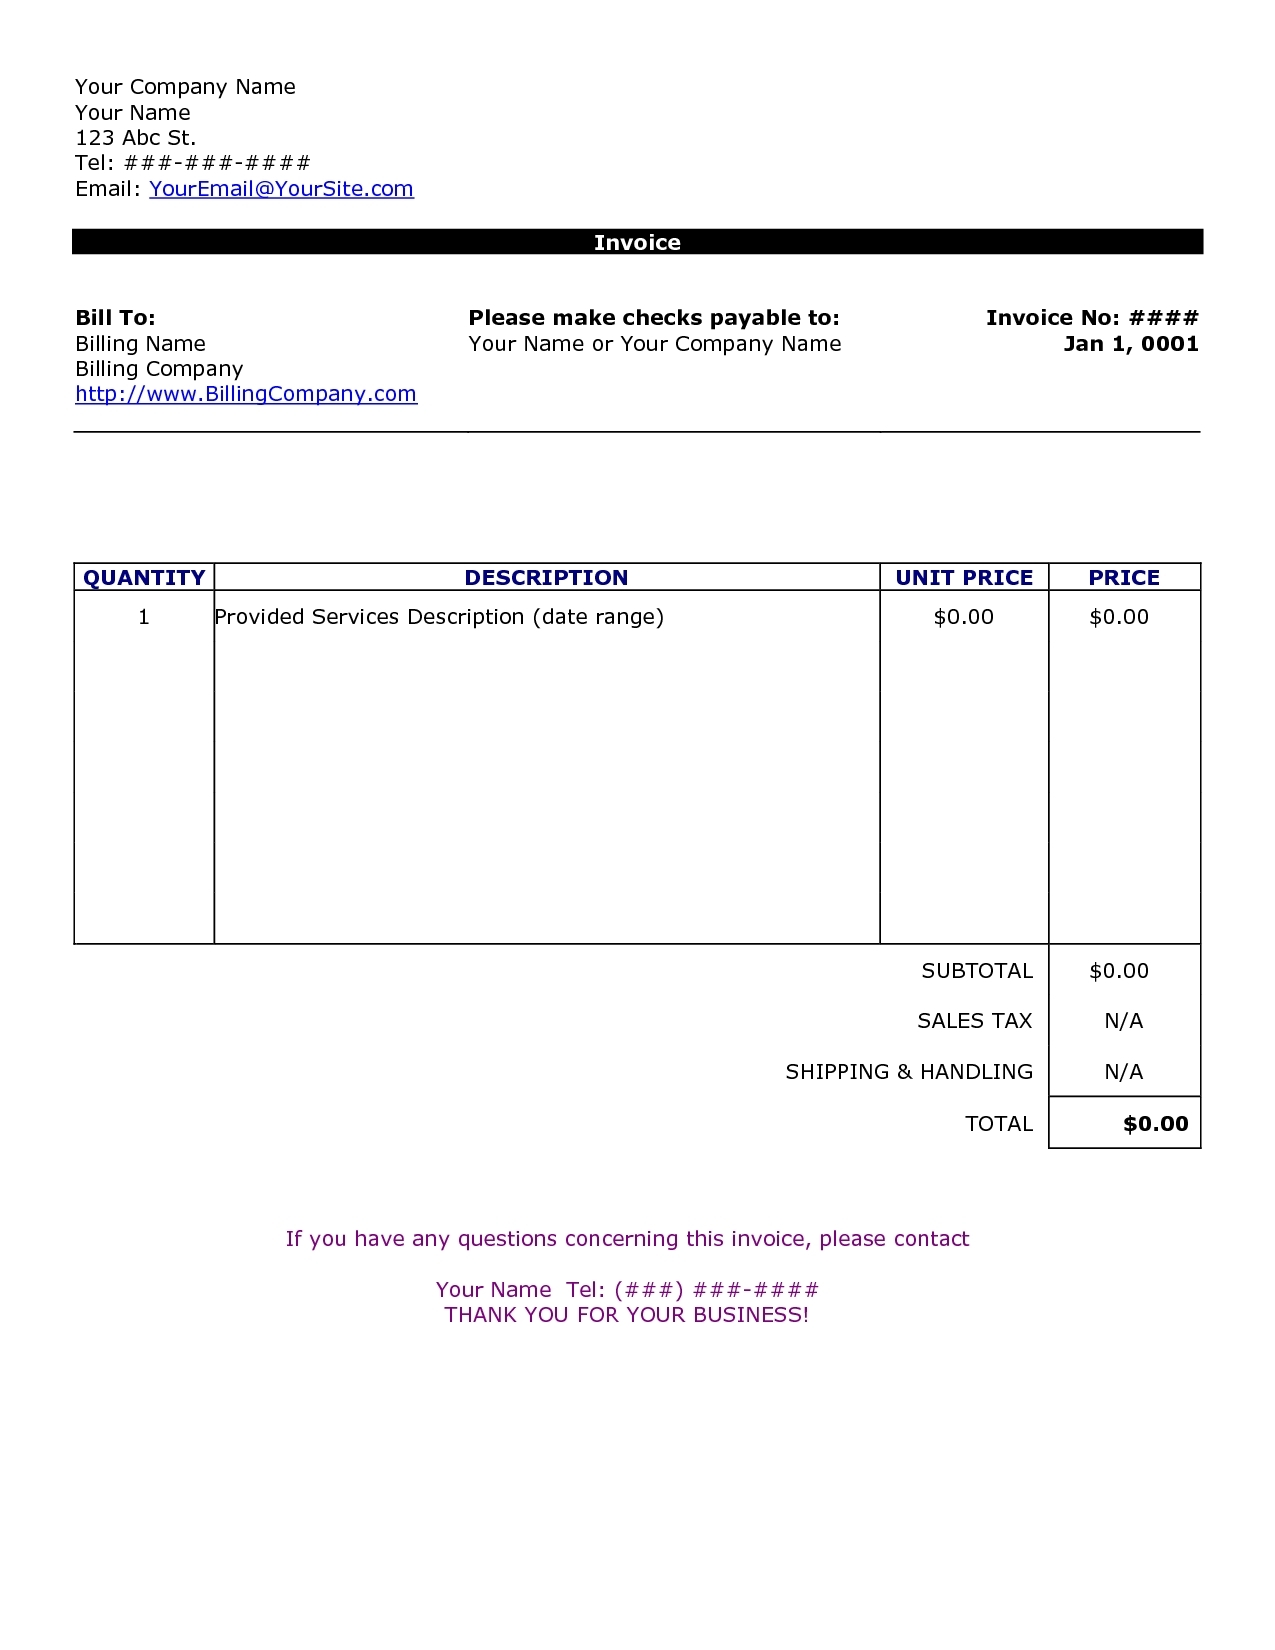 Word Doc Invoice